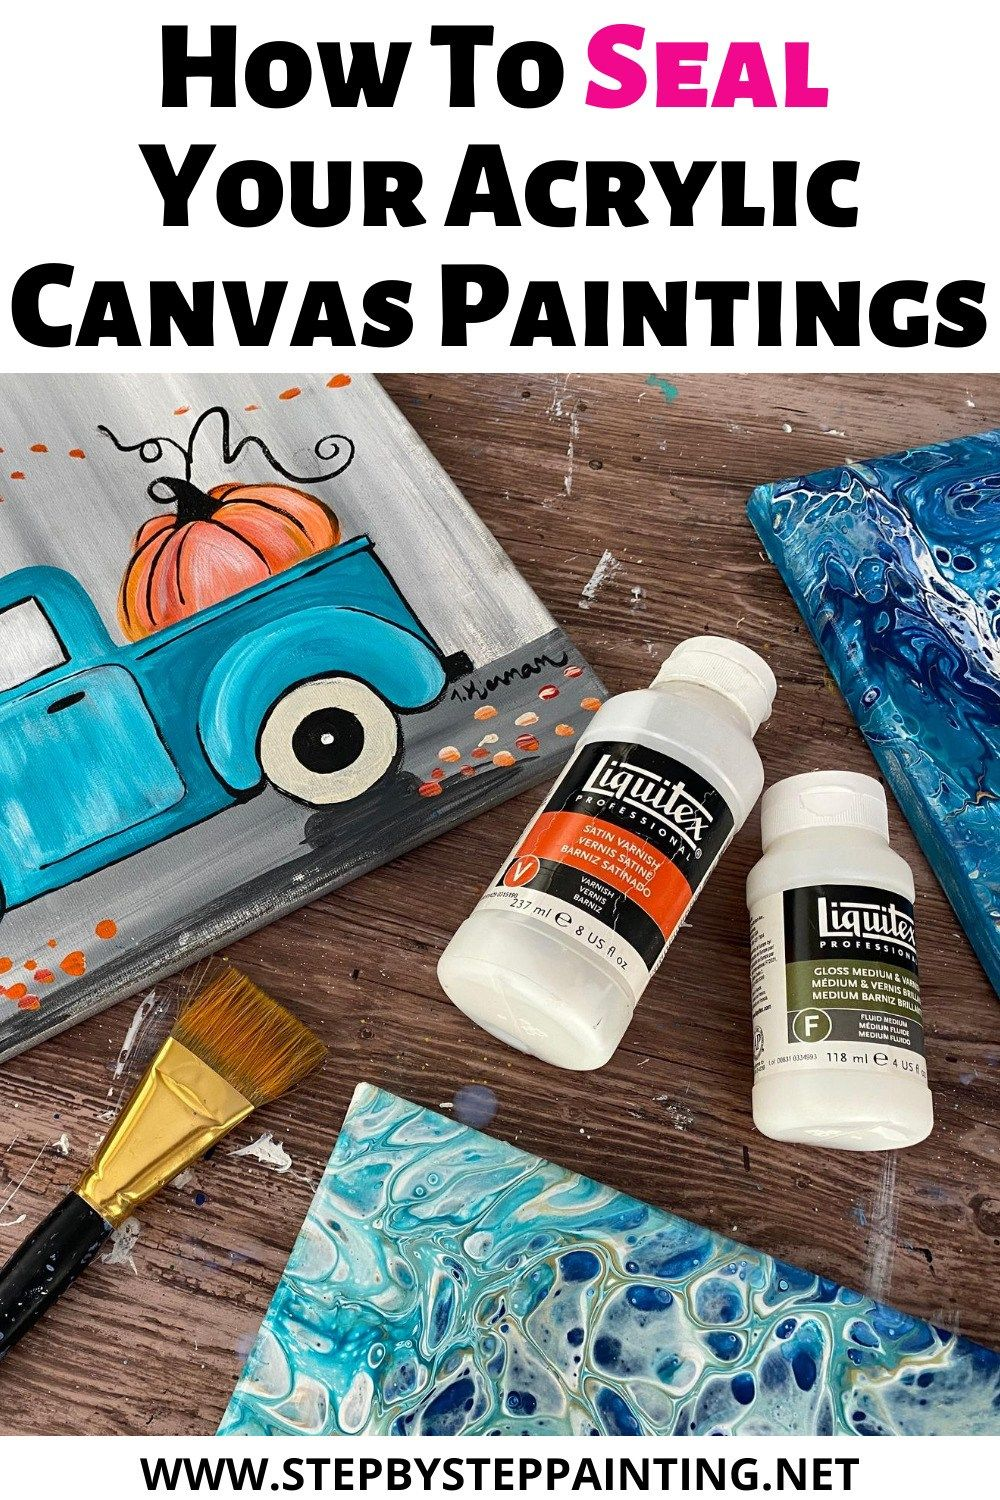 How To Seal An Acrylic Painting Step By Step Painting in